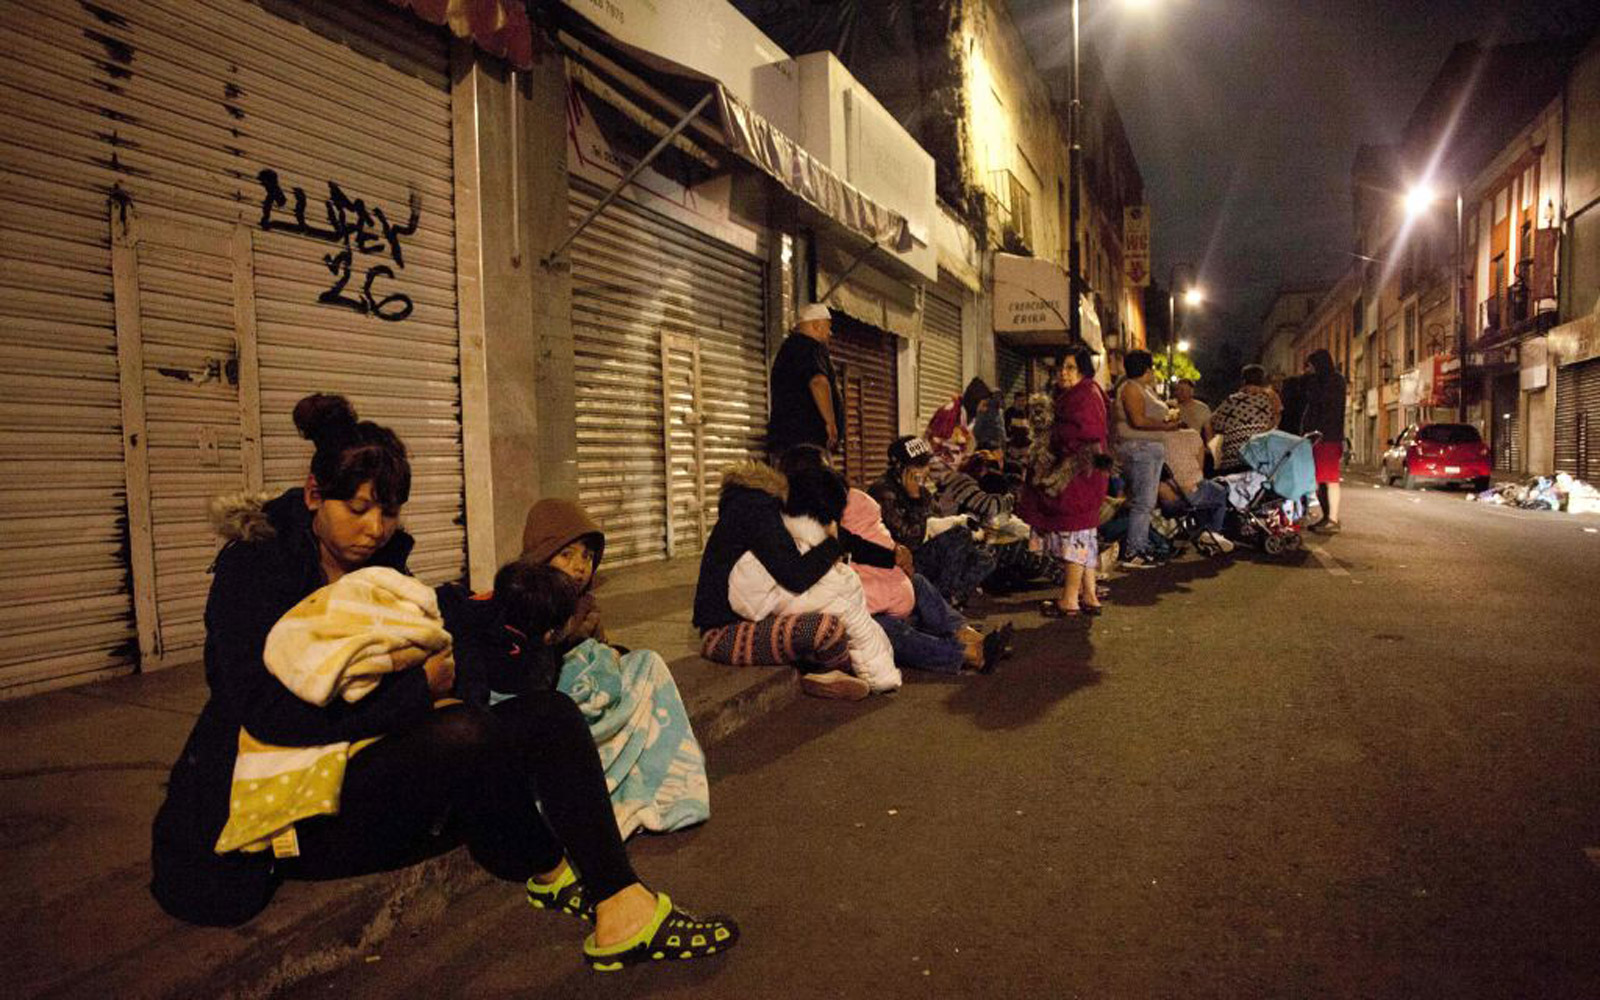 People sitting on the sidewalk after the earthquake in Southern Mexico